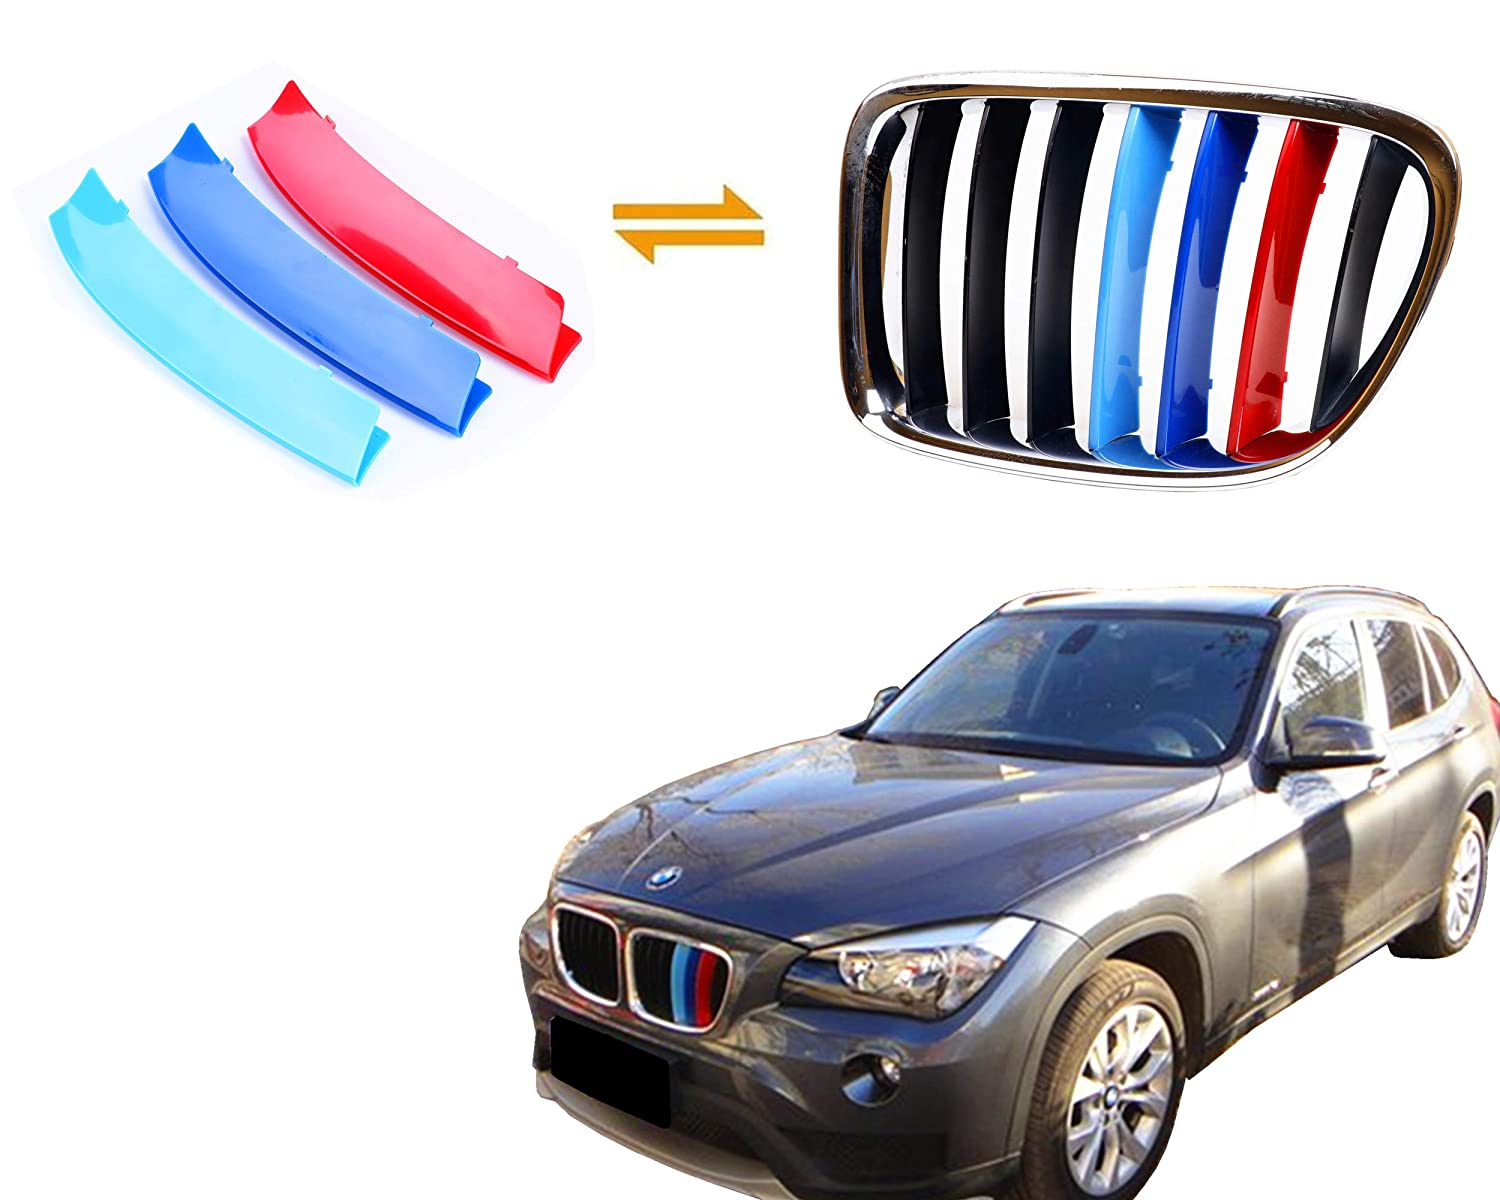 for BMW 2011-2015 X1, 7 Beams Jackey Awesome Exact Fit //////M-Colored Grille Insert Trims for BMW 2011-2015 BMW E84 X1 Center Kidney Grill